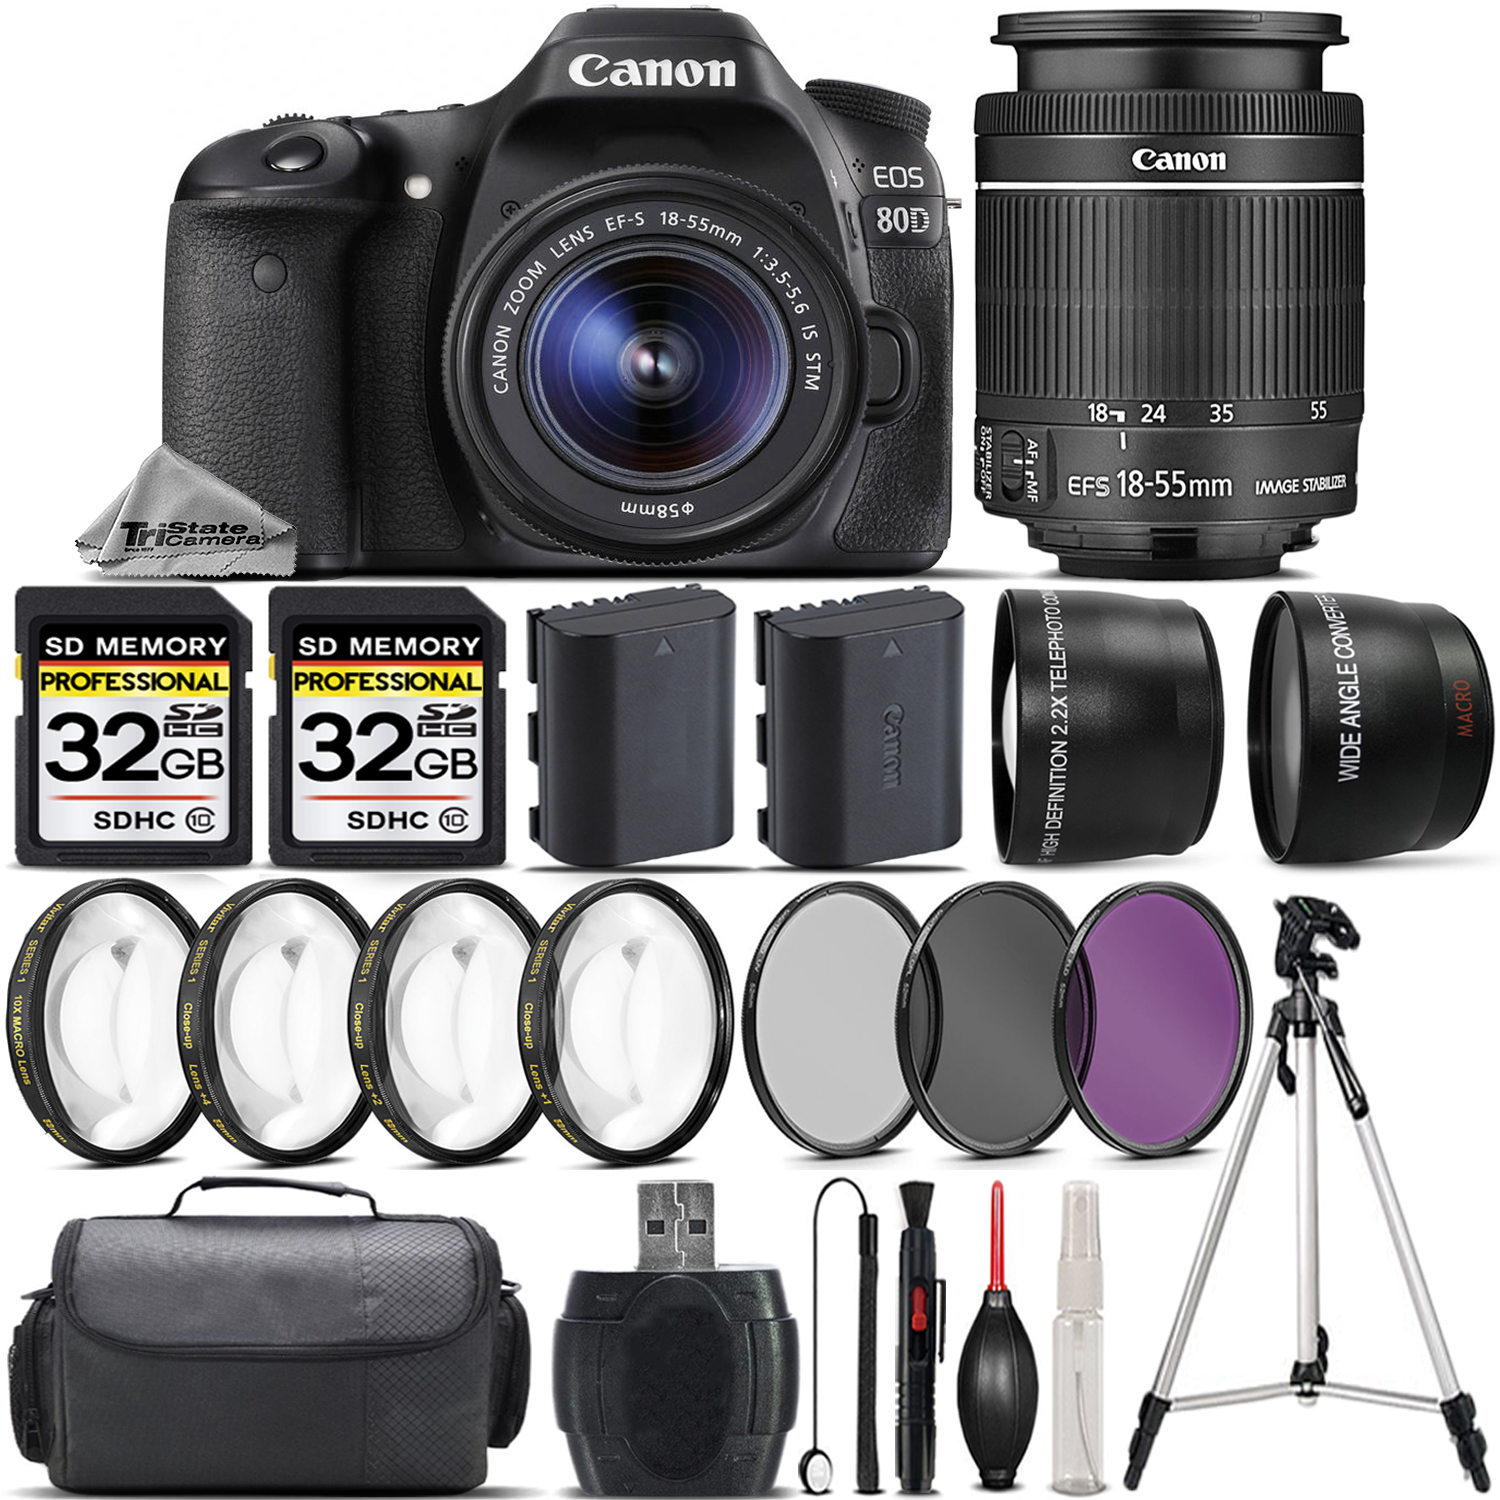 EOS 80D DSLR Camera + 18-55mm STM +EXT BAT + 4PC Macro Kit + 64GB Bundle *FREE SHIPPING*